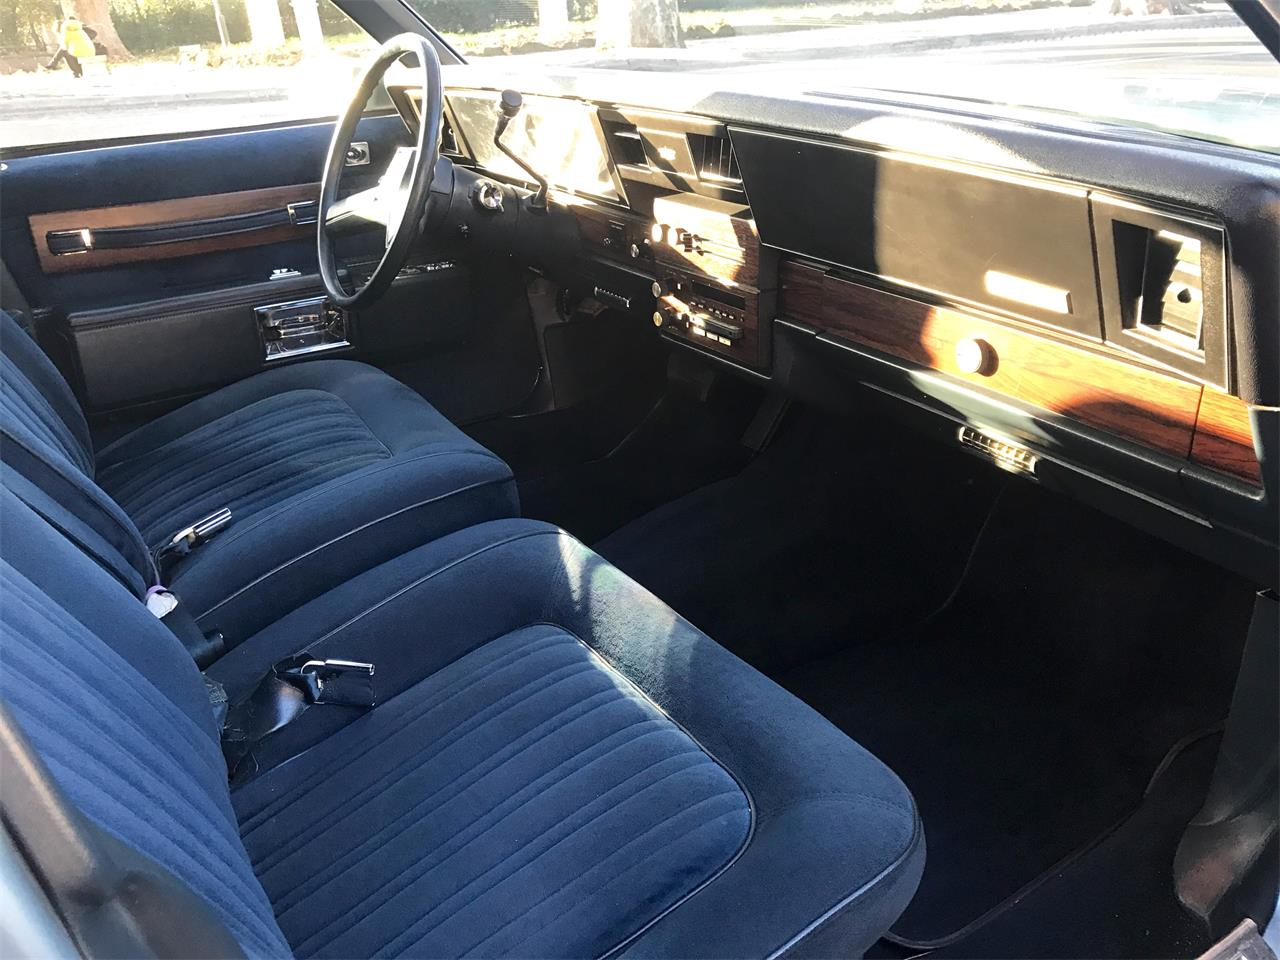 Large Picture of '87 Chevrolet Caprice located in Rome Italy Offered by a Private Seller - JH35